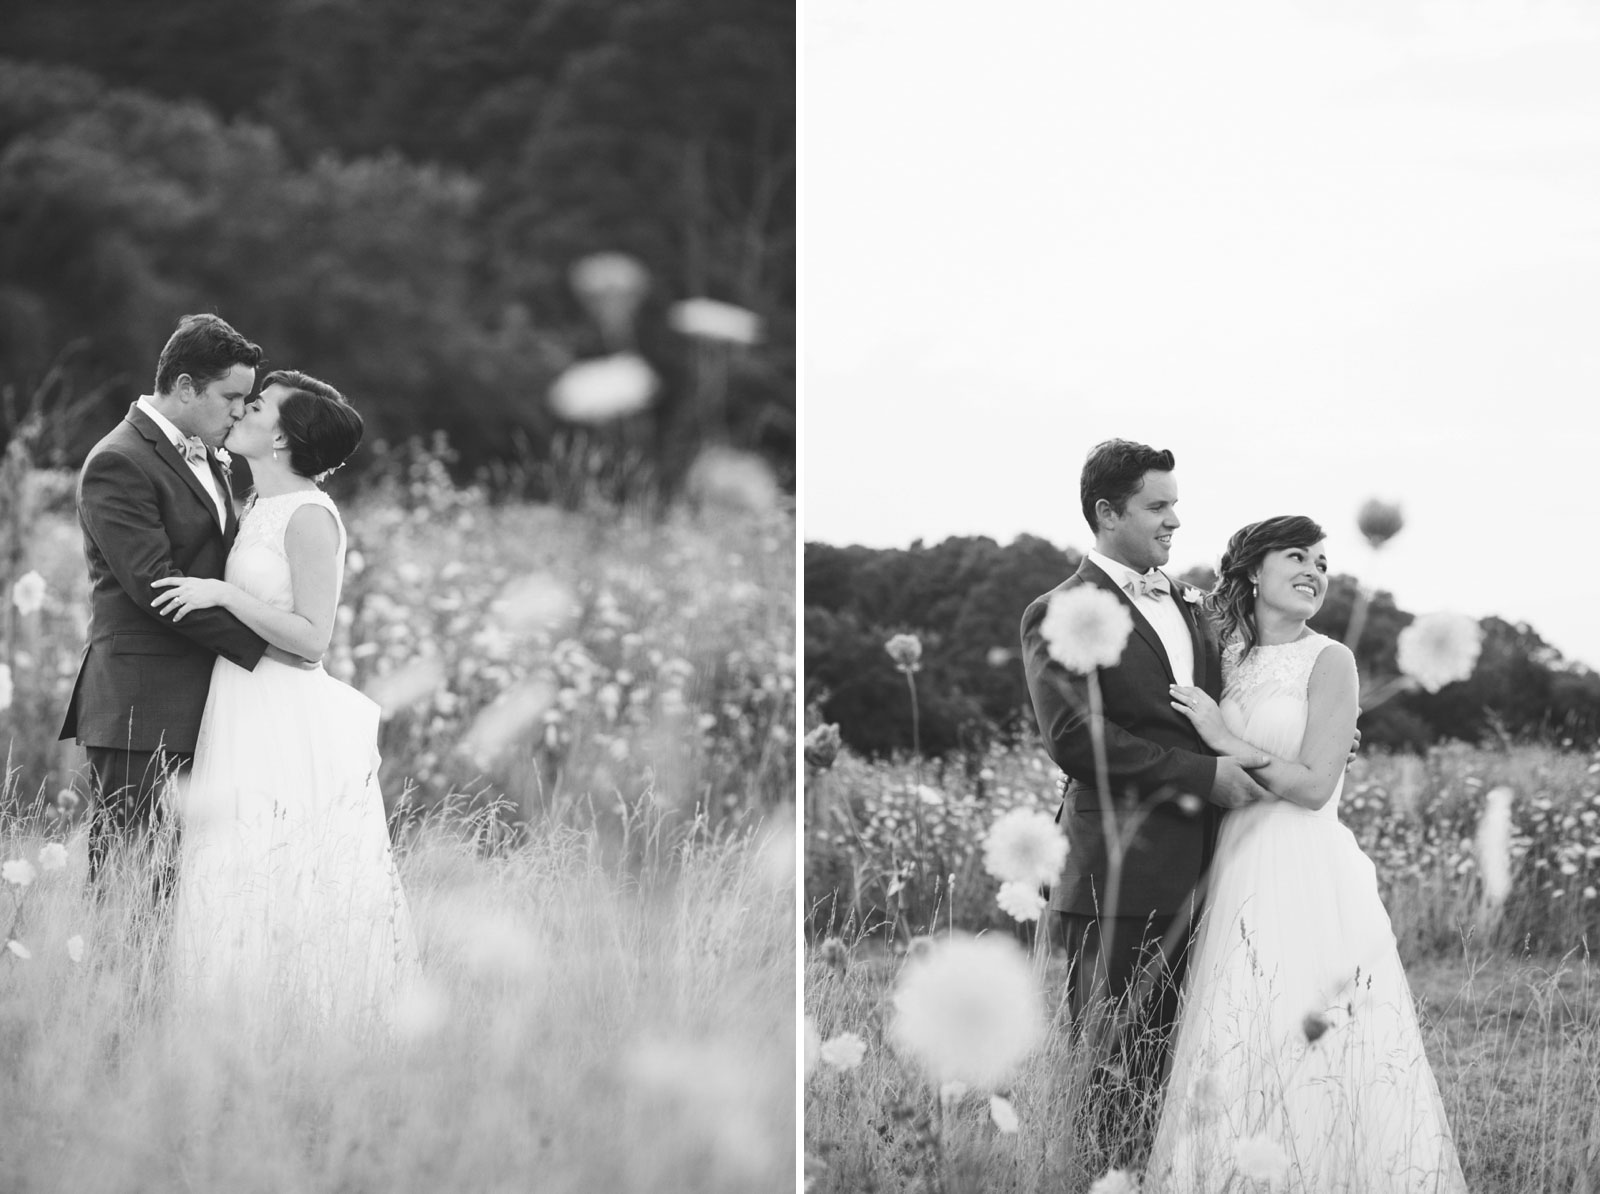 romantic black and white bride and groom in a field of wildflowers kissing and holding each other.